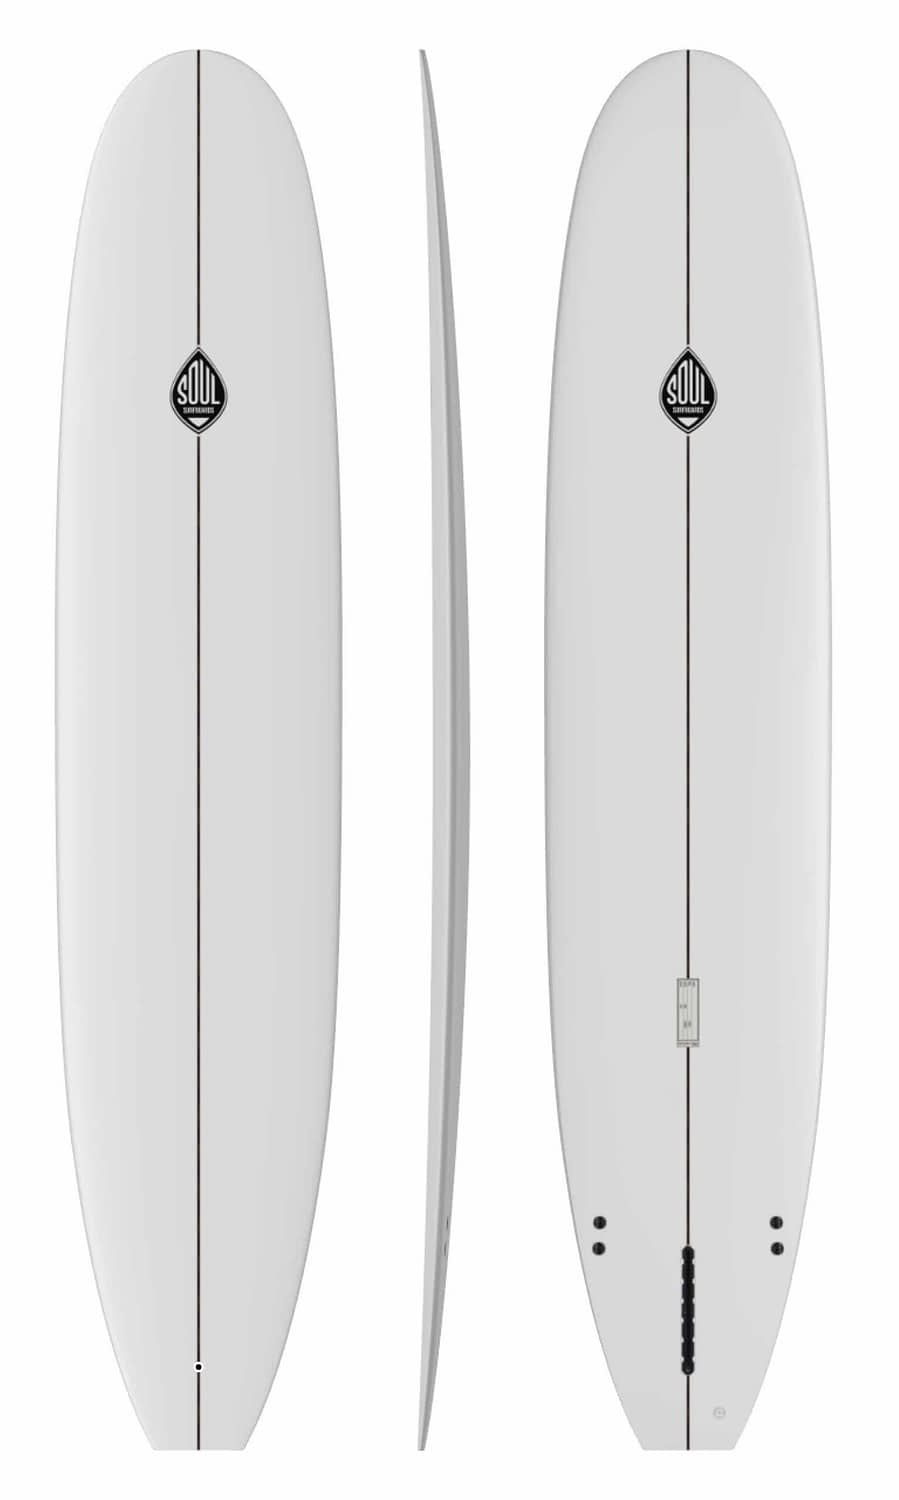 BUZZY SOUL SURFBOARDS